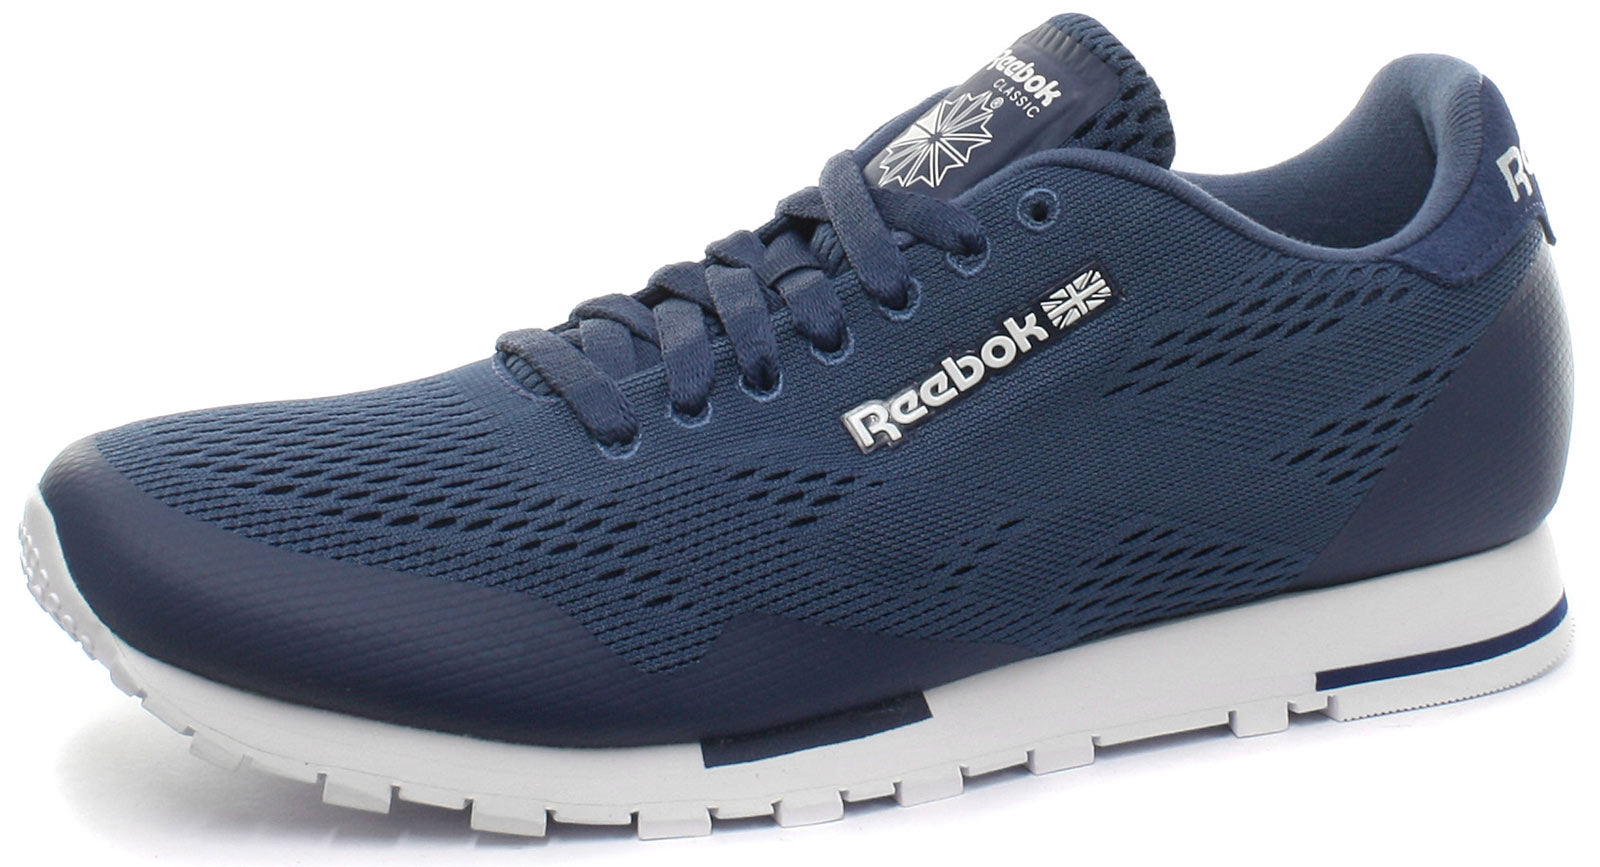 80f5caa6bd6 Reebok Classic Runner Sneaker Mens Shoes Classics SNEAKERS Blue V67725 UK  6.5. About this product. Picture 1 of 6 ...